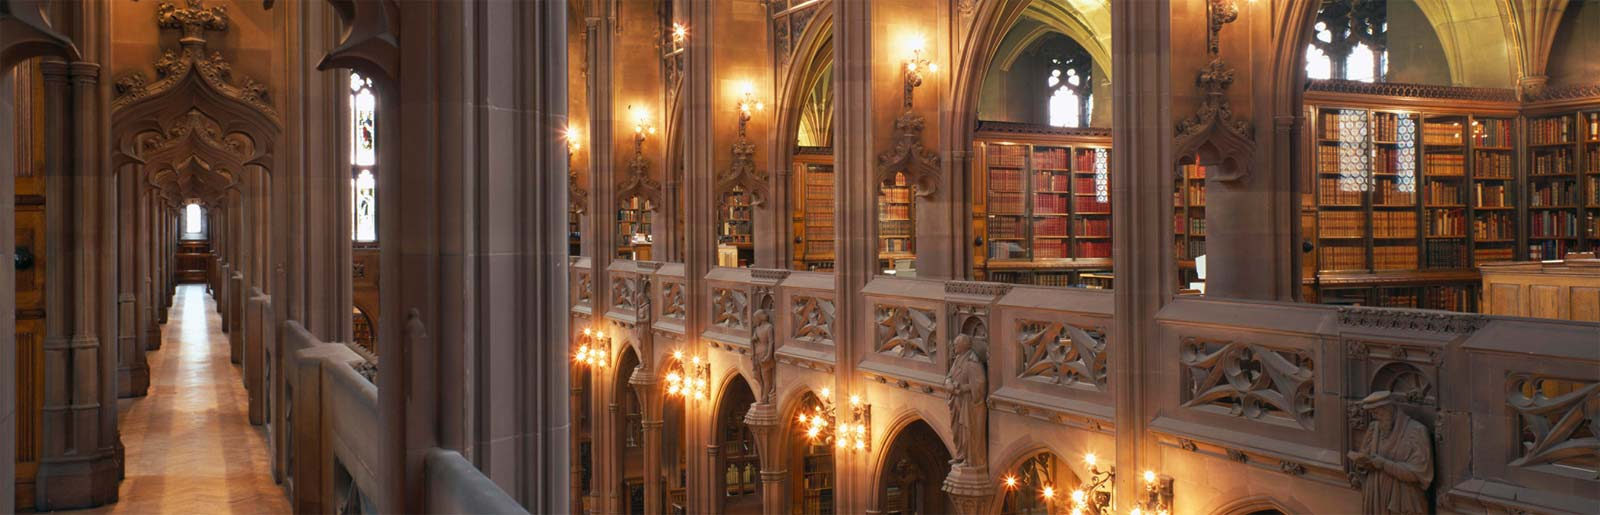 Inside the John Rylands Library in Manchester.